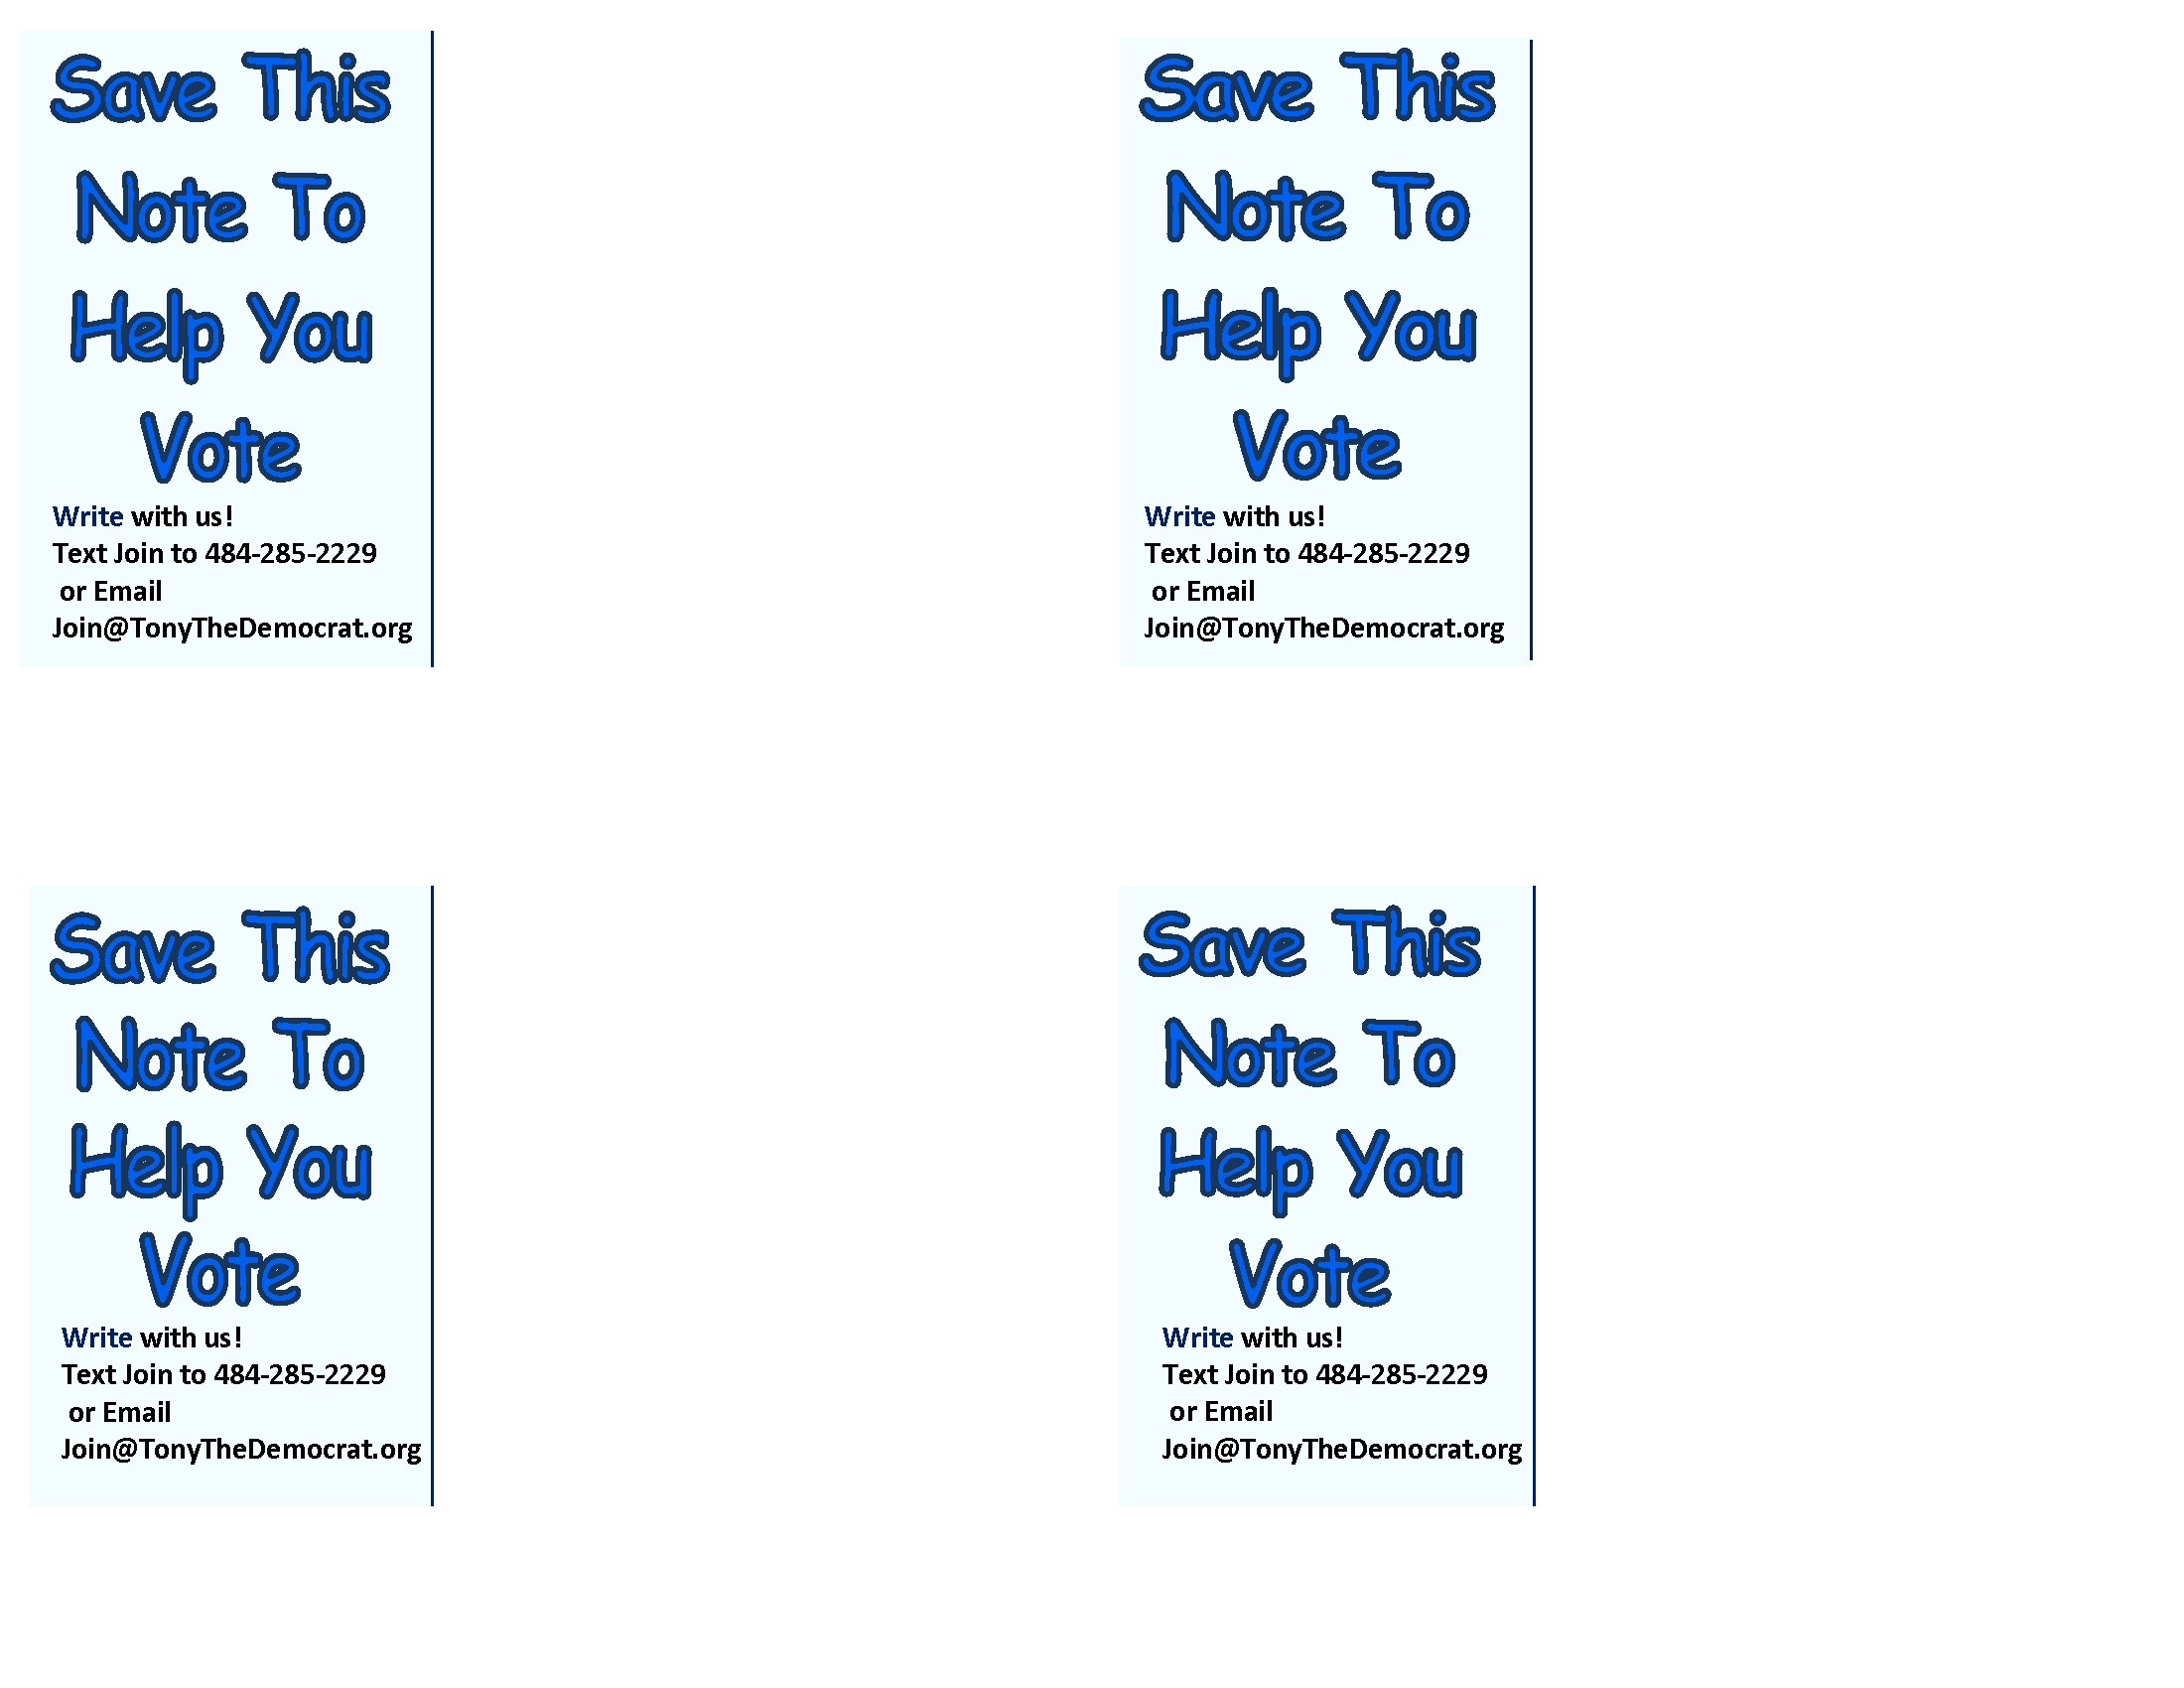 Save This Note to Help You Vote